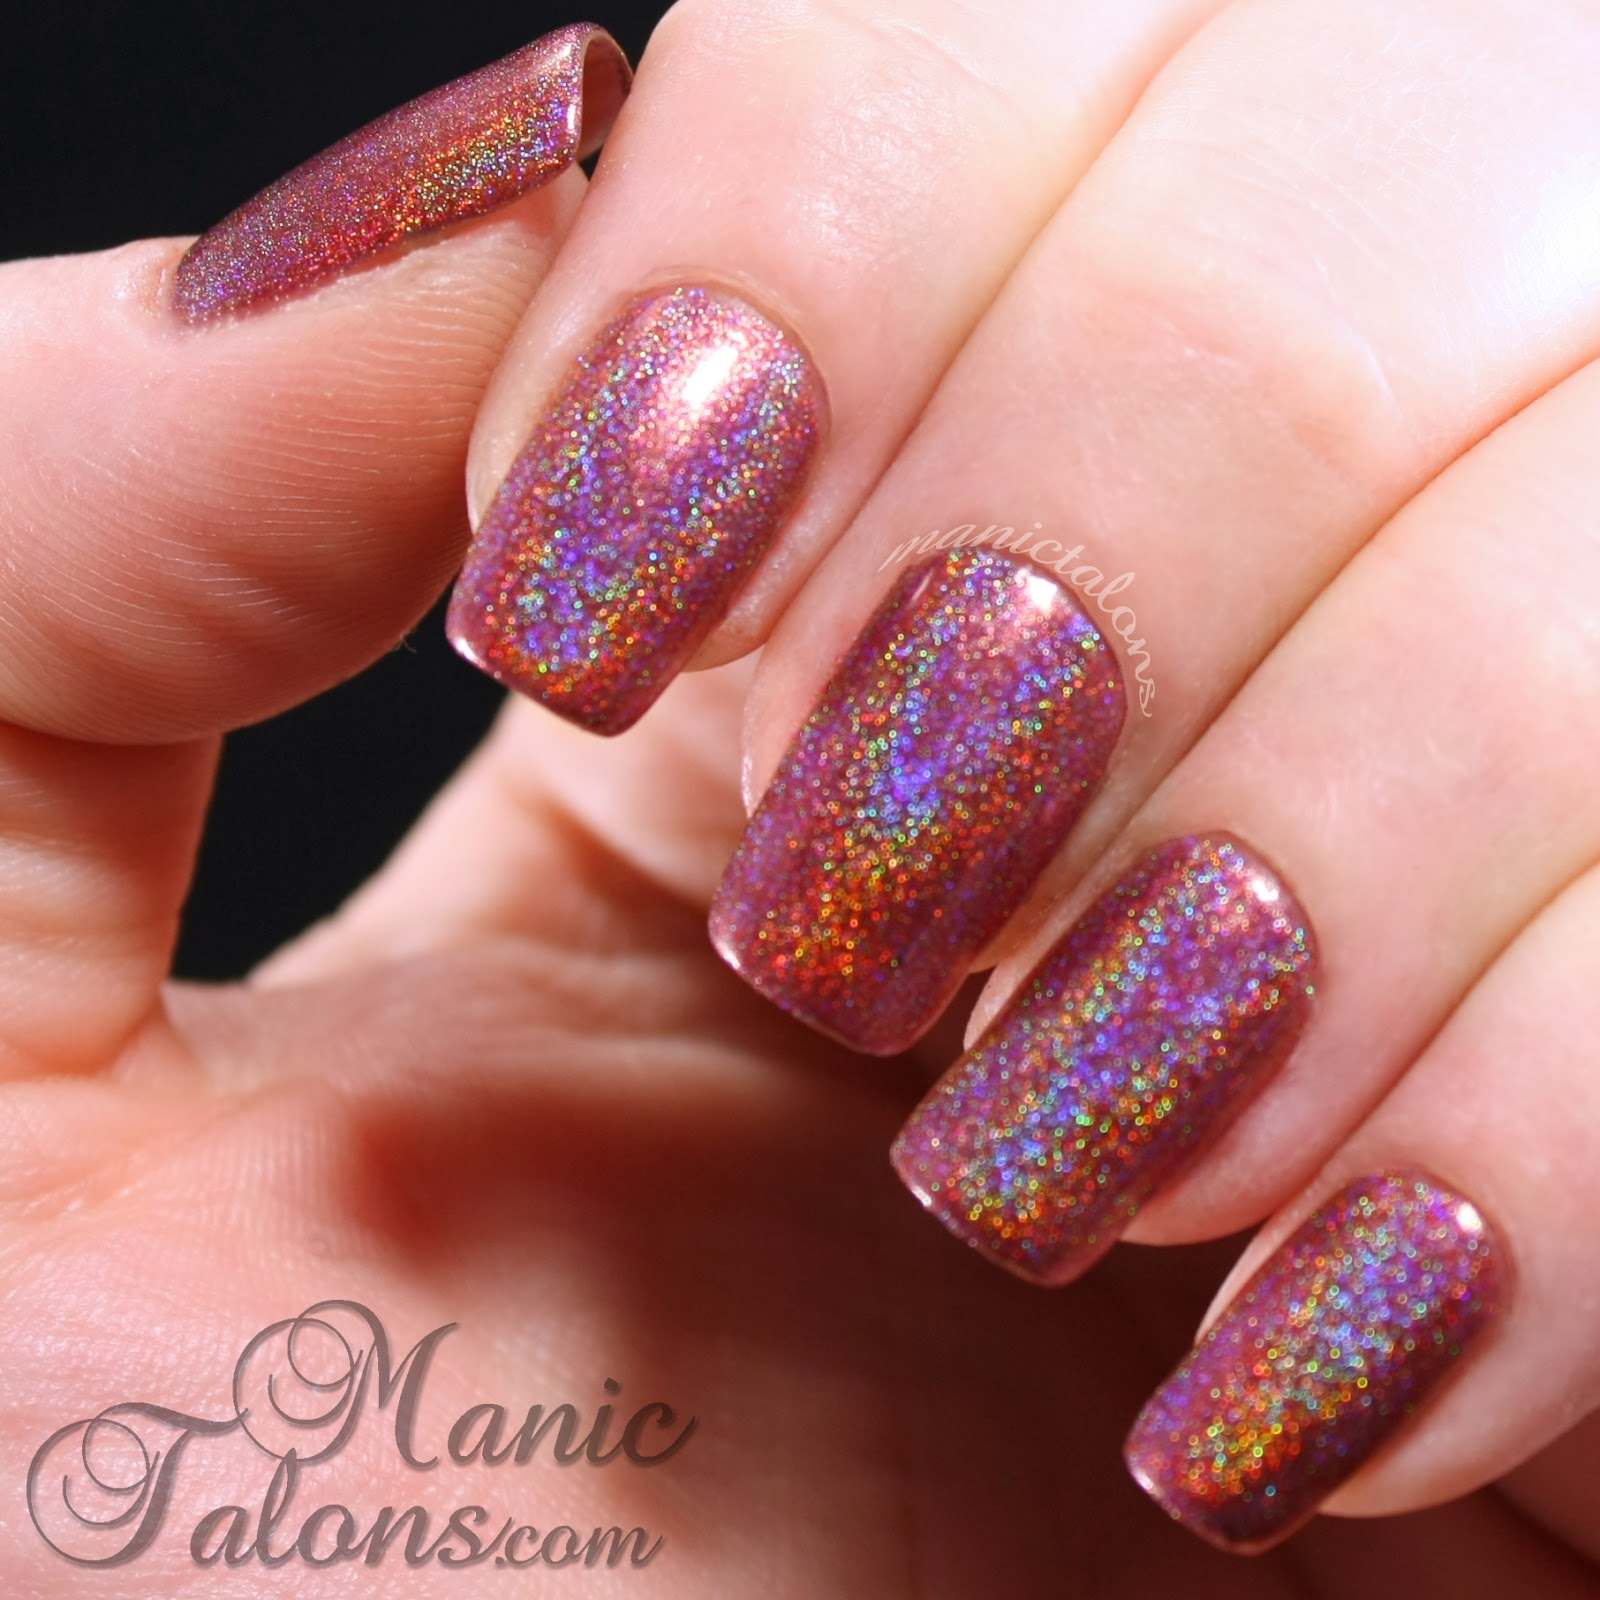 Girly Bits Auld Langs Wyne Swatch without top coat